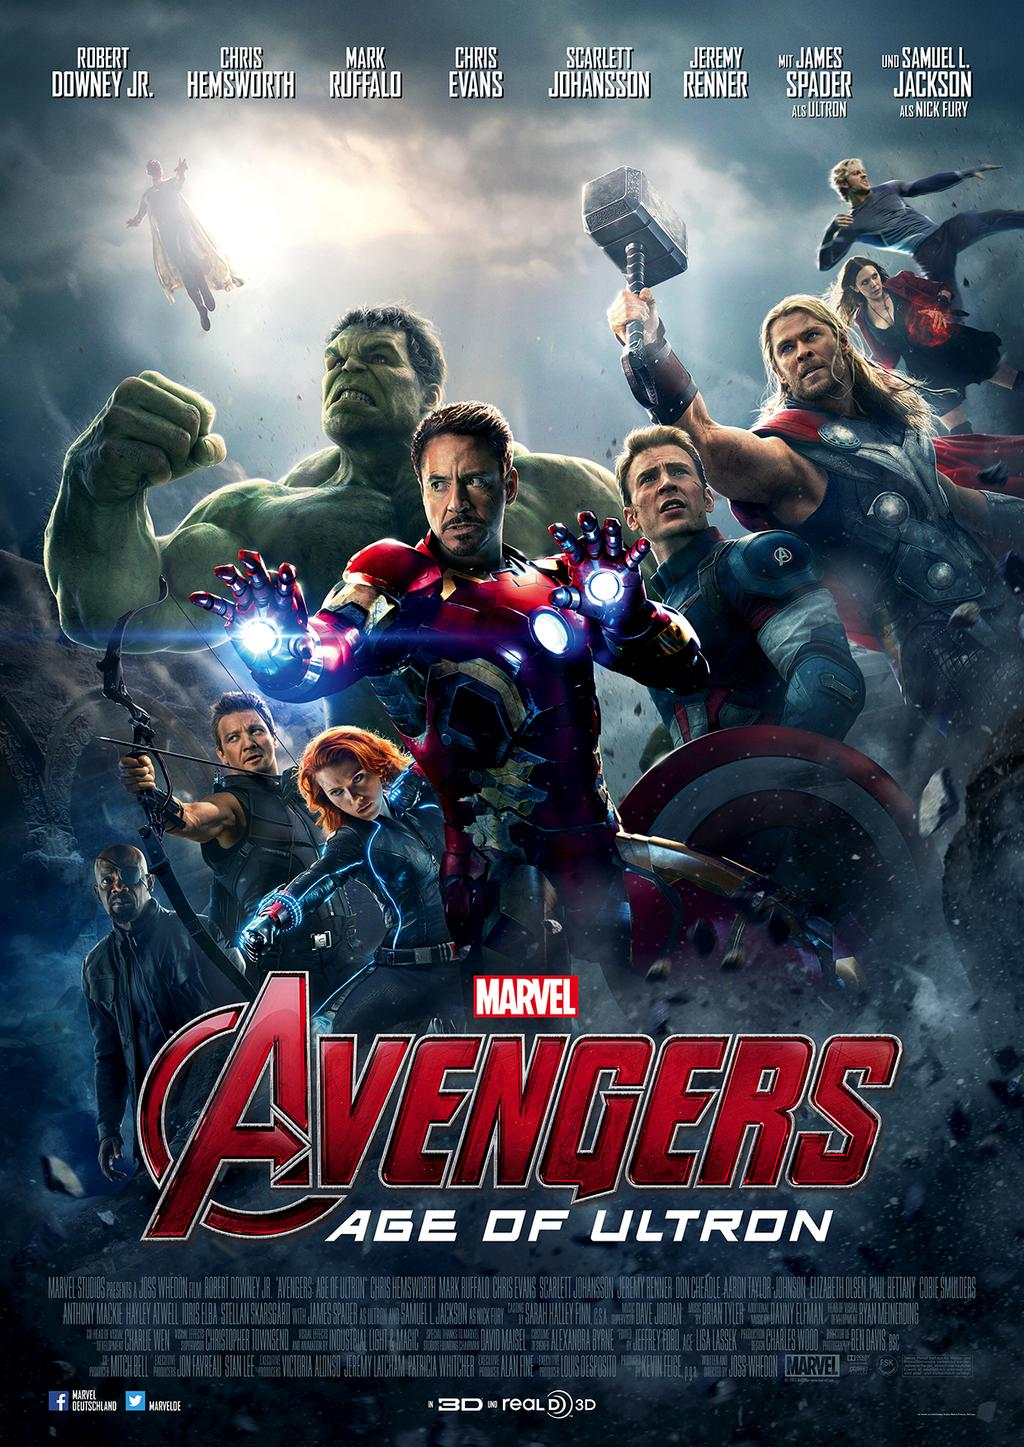 Avengers-age-of-ultron-2015-Film